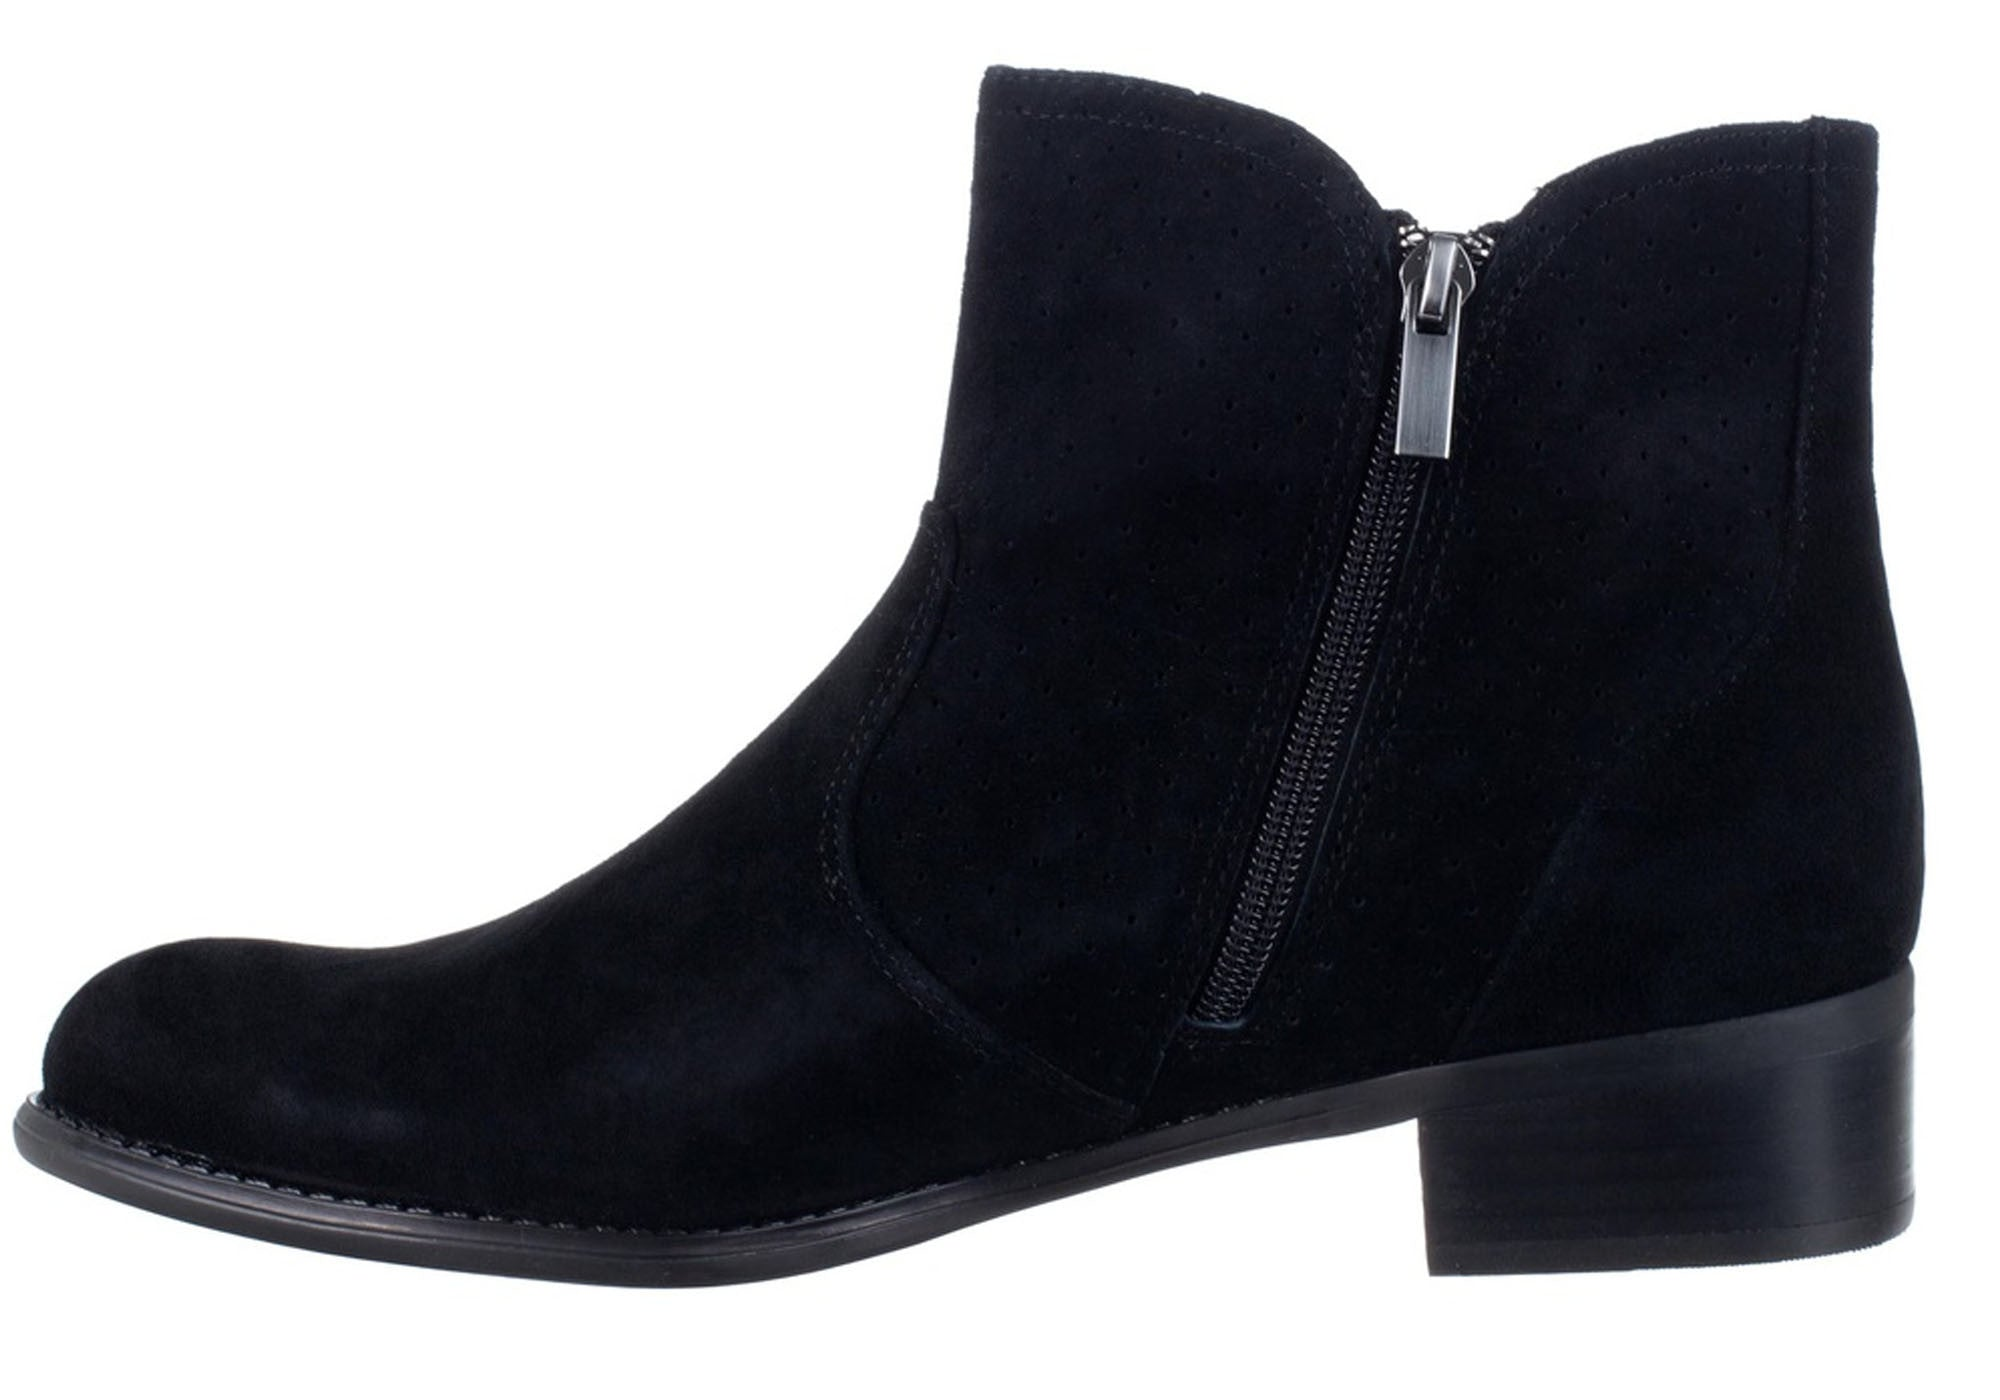 Hush Puppies Yelena Womens Suede Ankle Boots